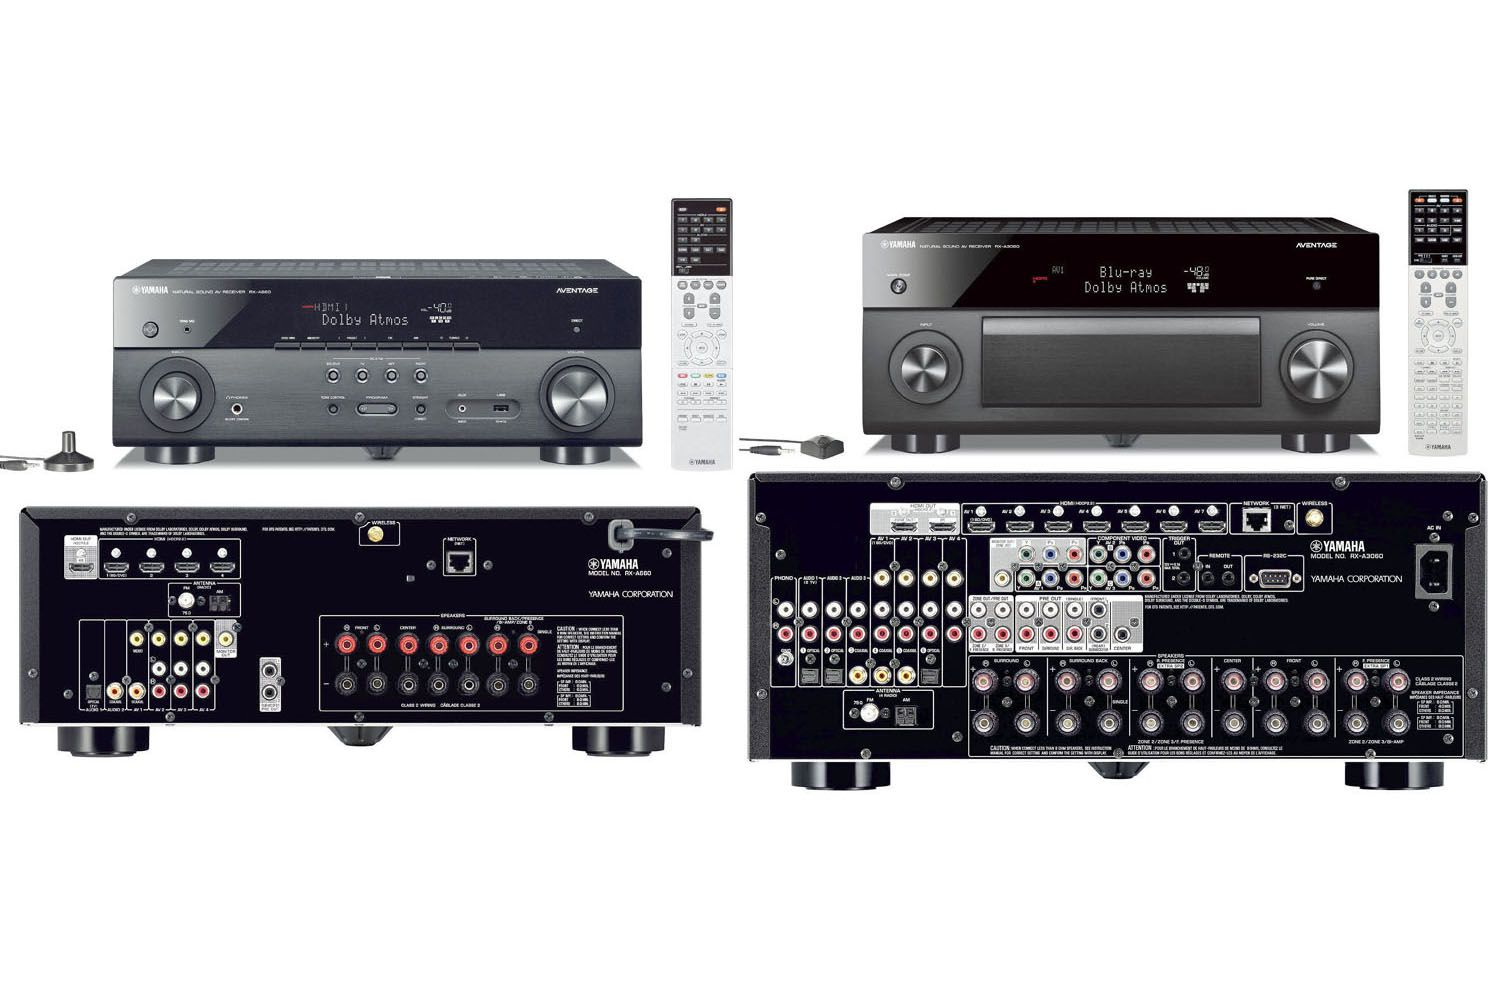 yamaha 39 s aventage rx a60 series home theater receivers. Black Bedroom Furniture Sets. Home Design Ideas